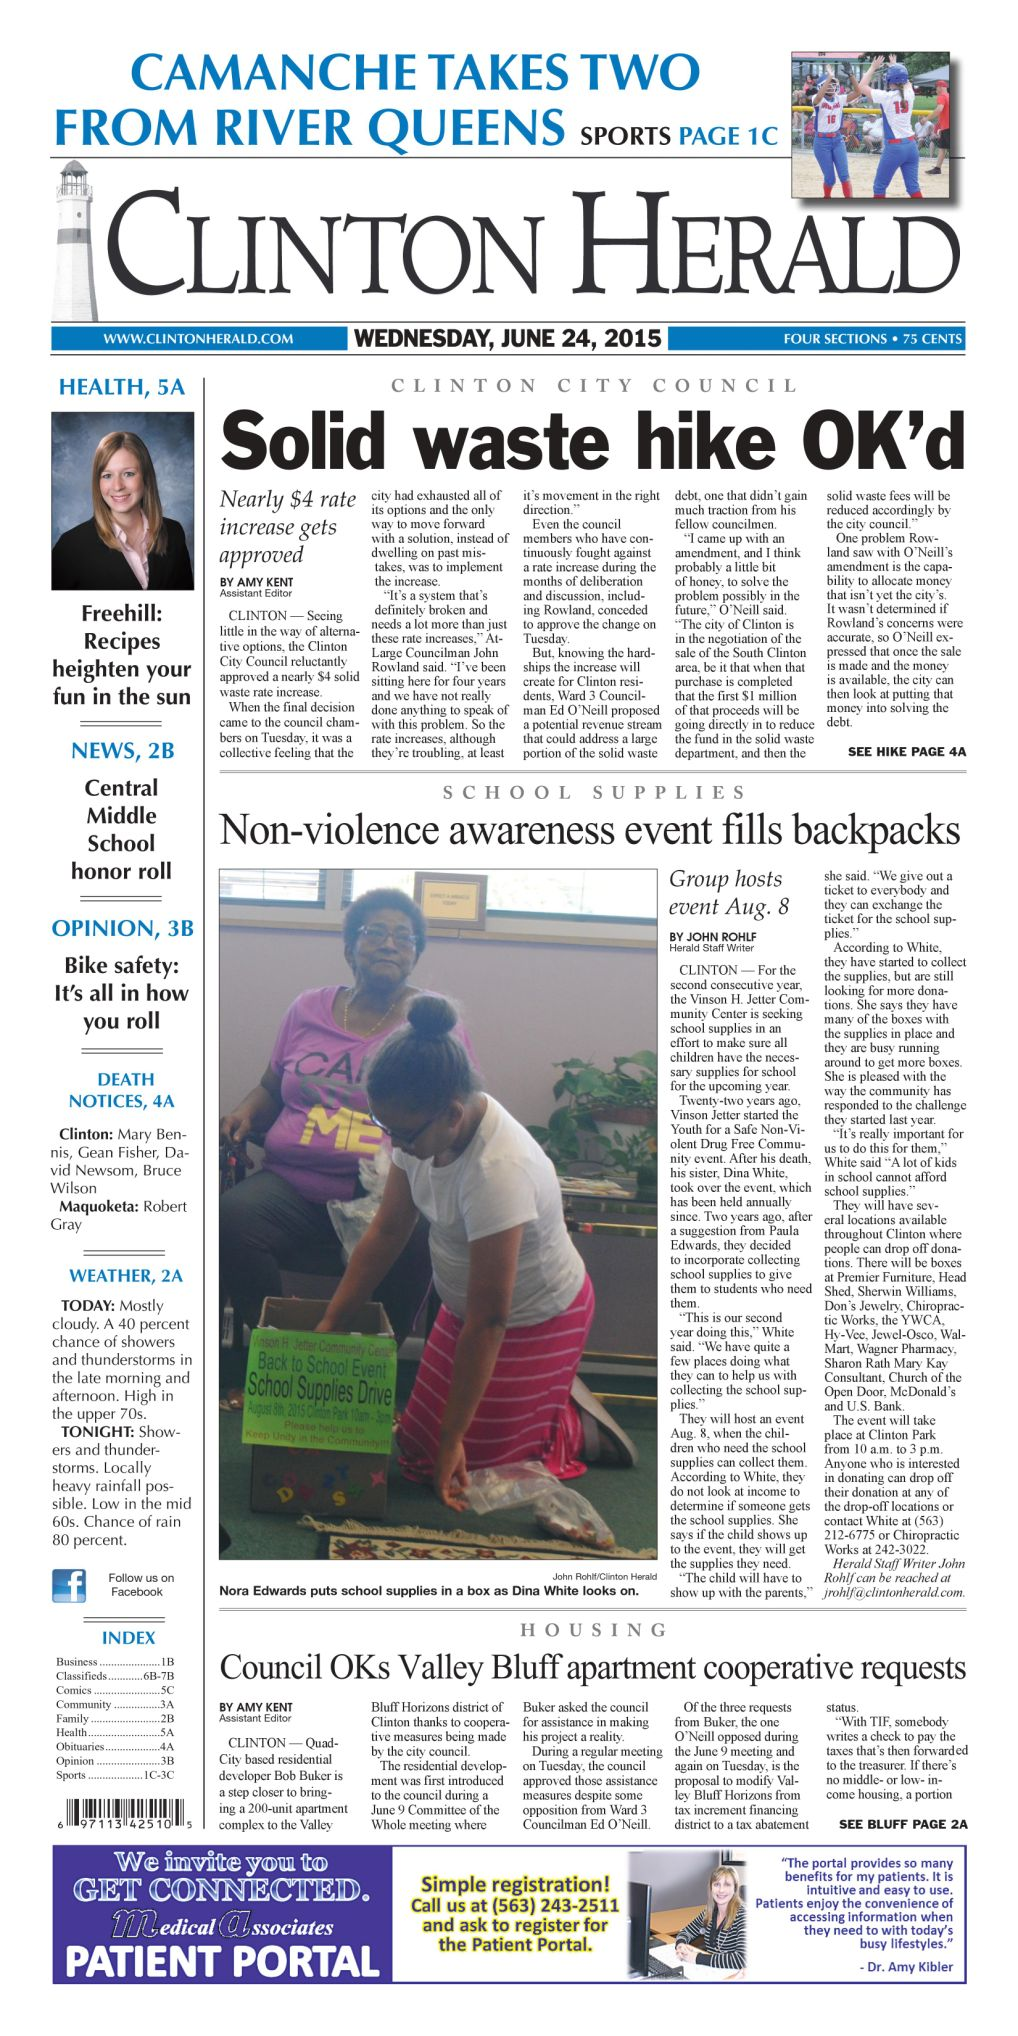 Non-violence awareness event fills backpacks | Local News